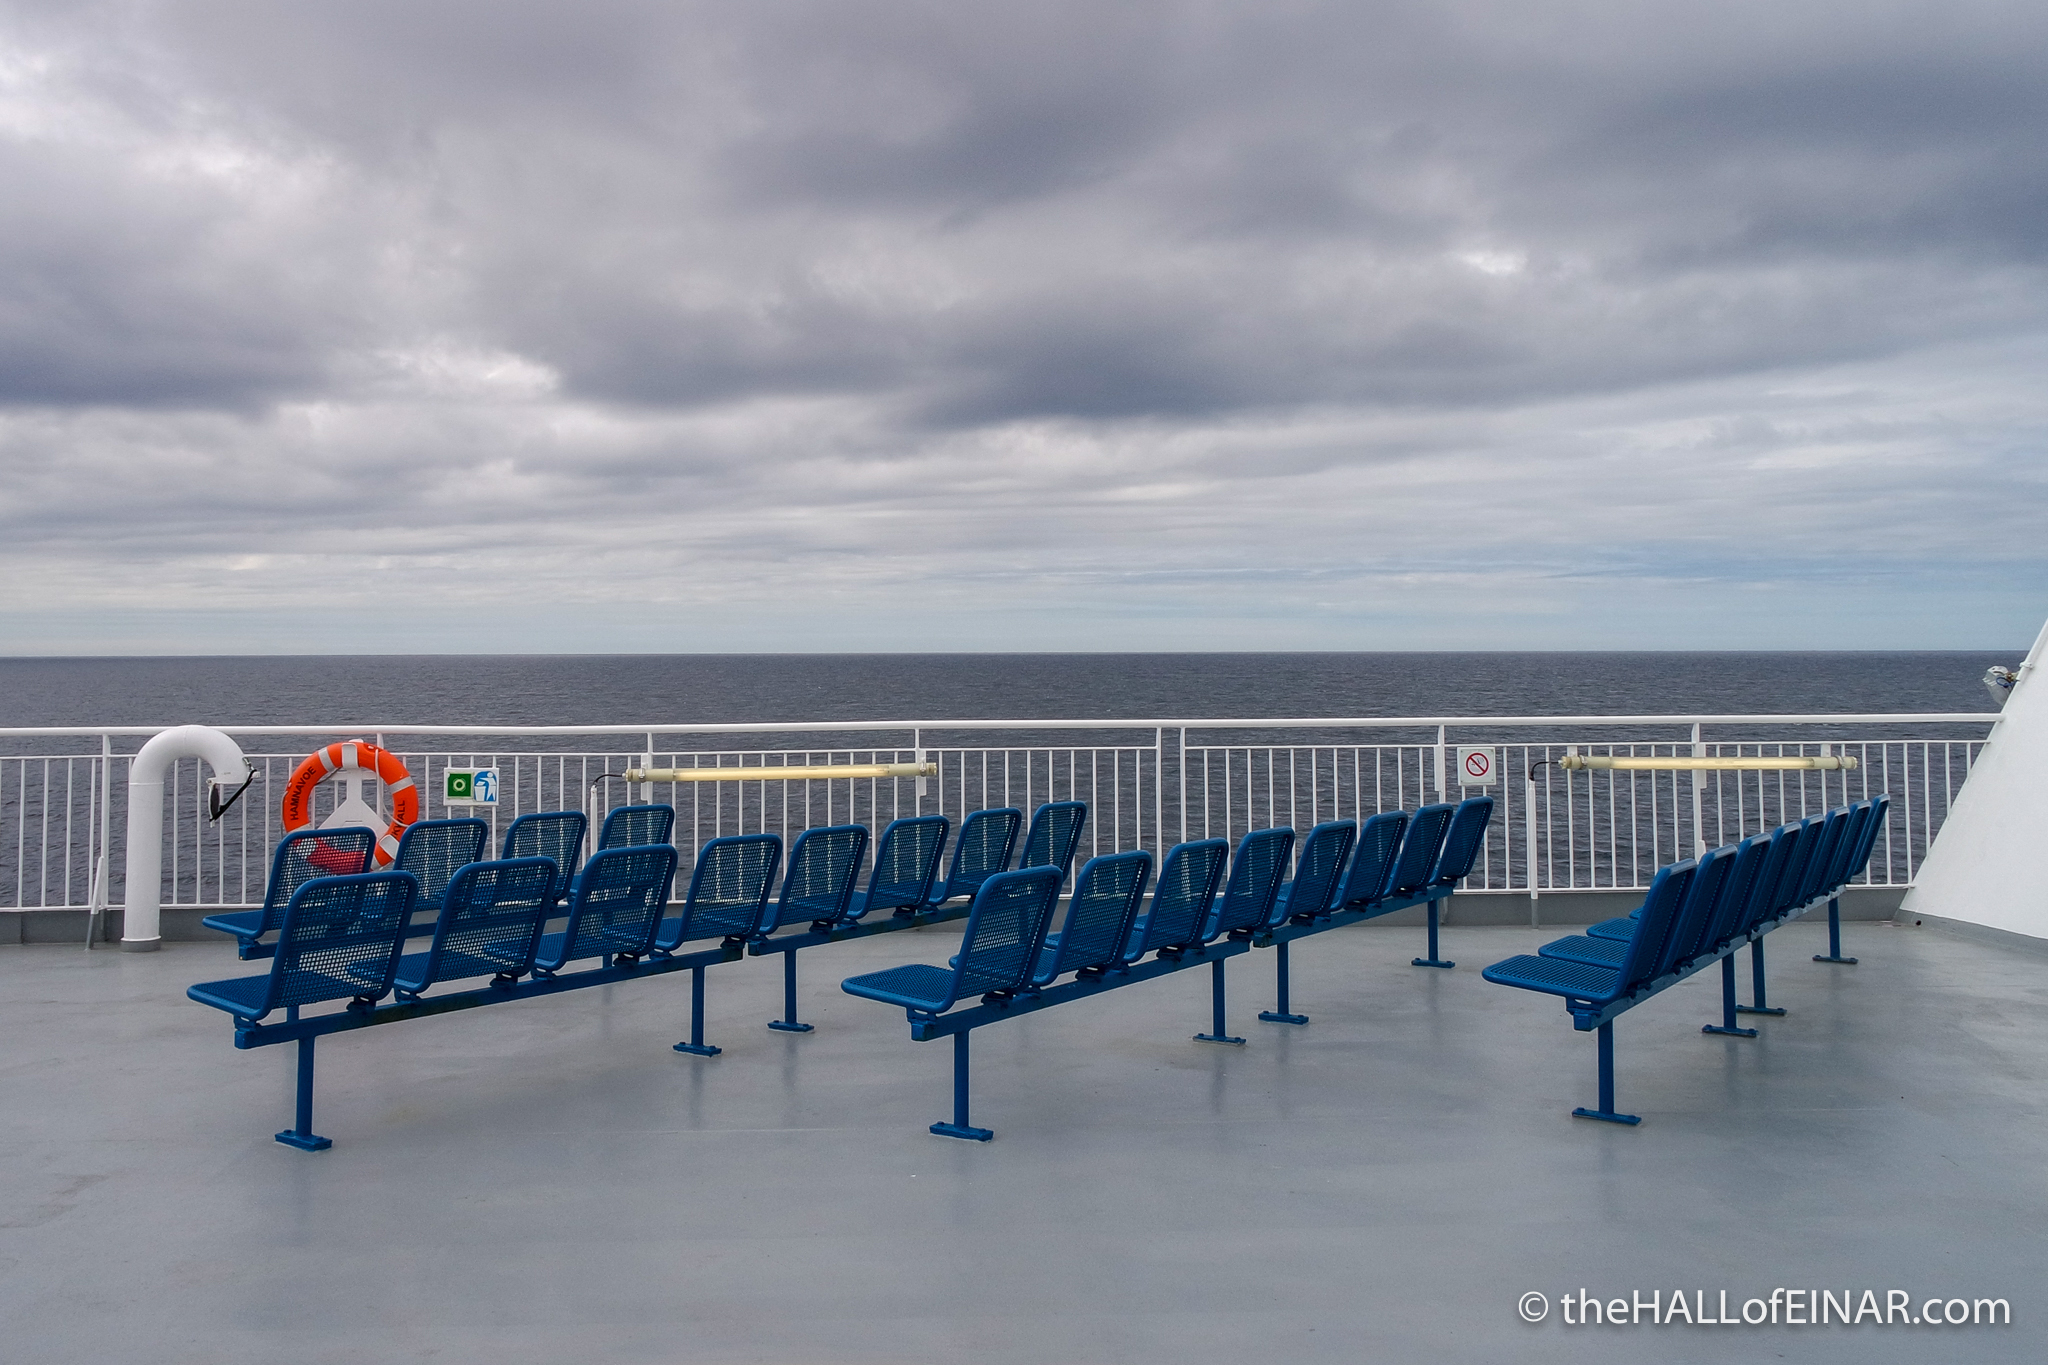 Northlink Ferry - The Hall of Einar - photograph (c) David Bailey (not the)